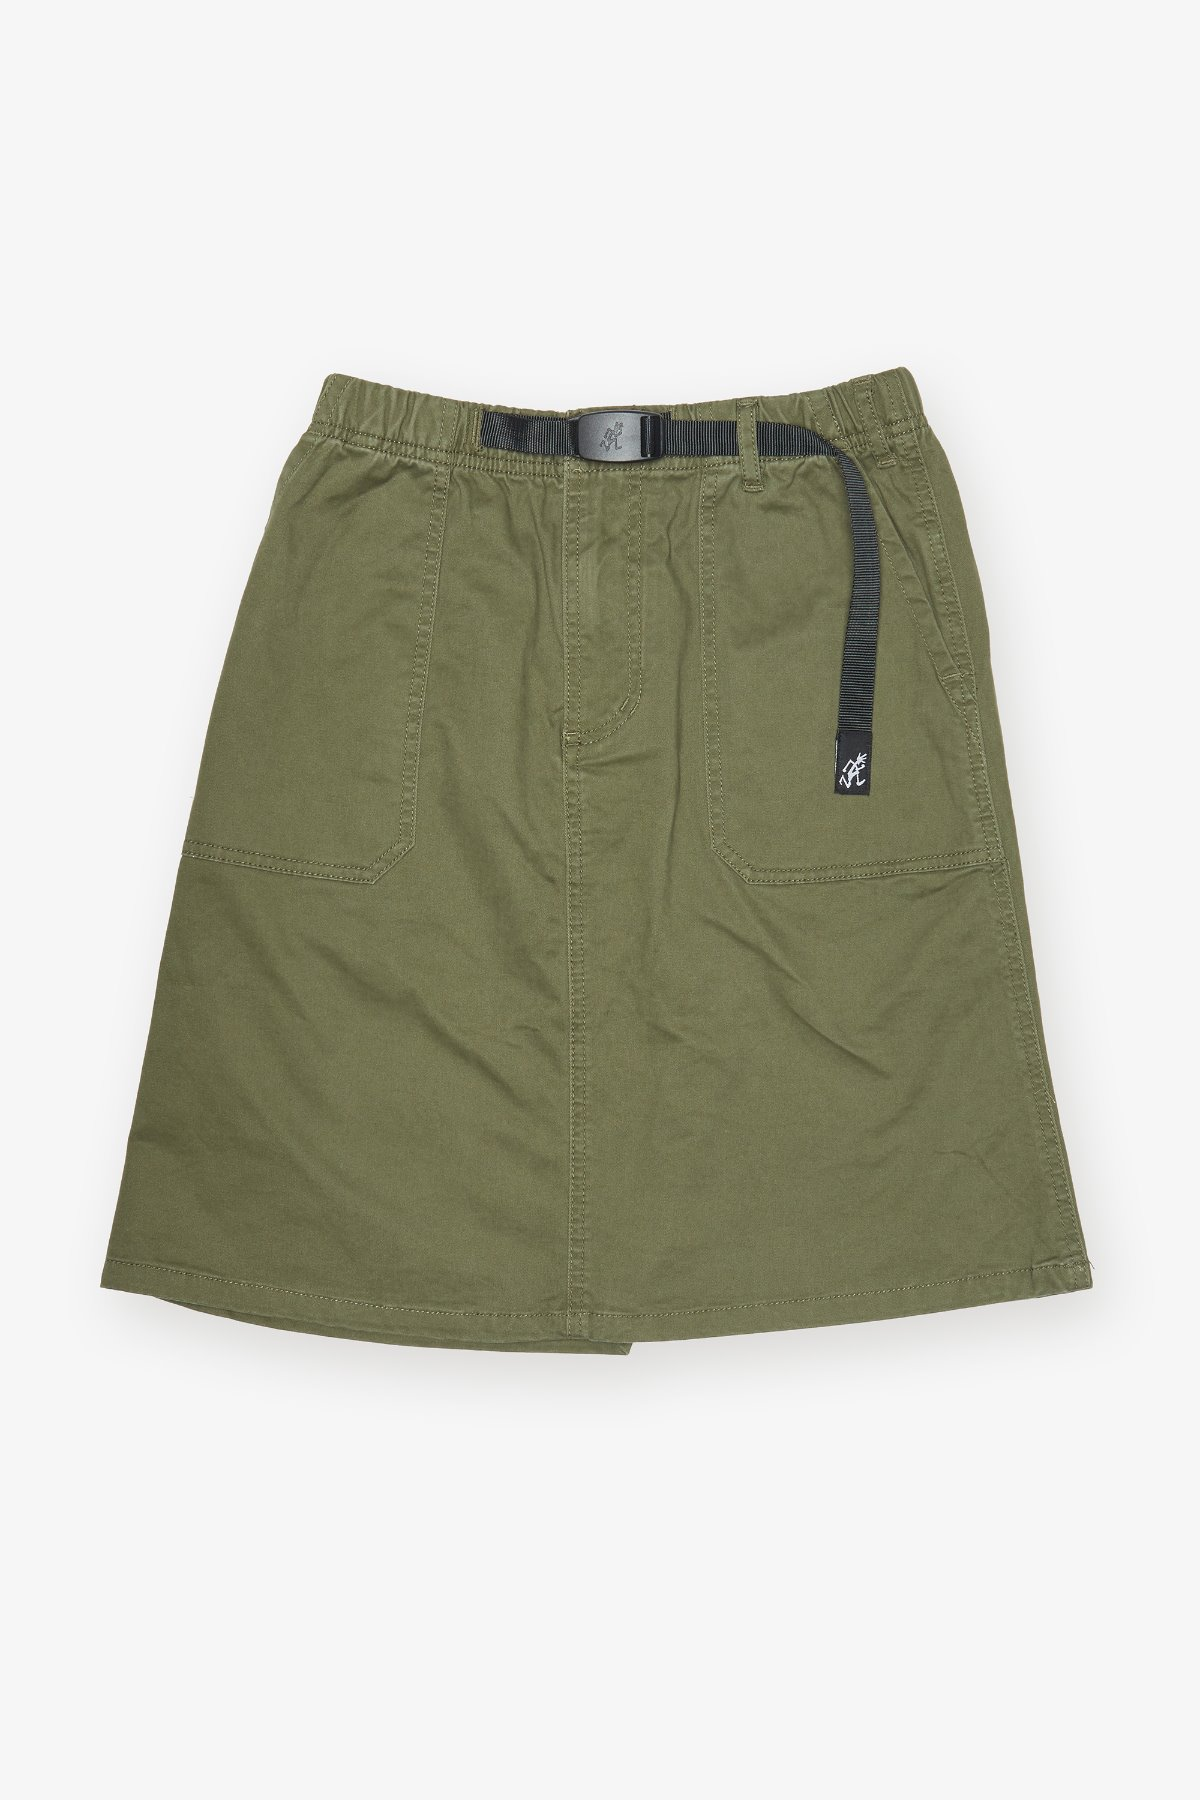 MIDDLE CUT SKIRT OLIVE